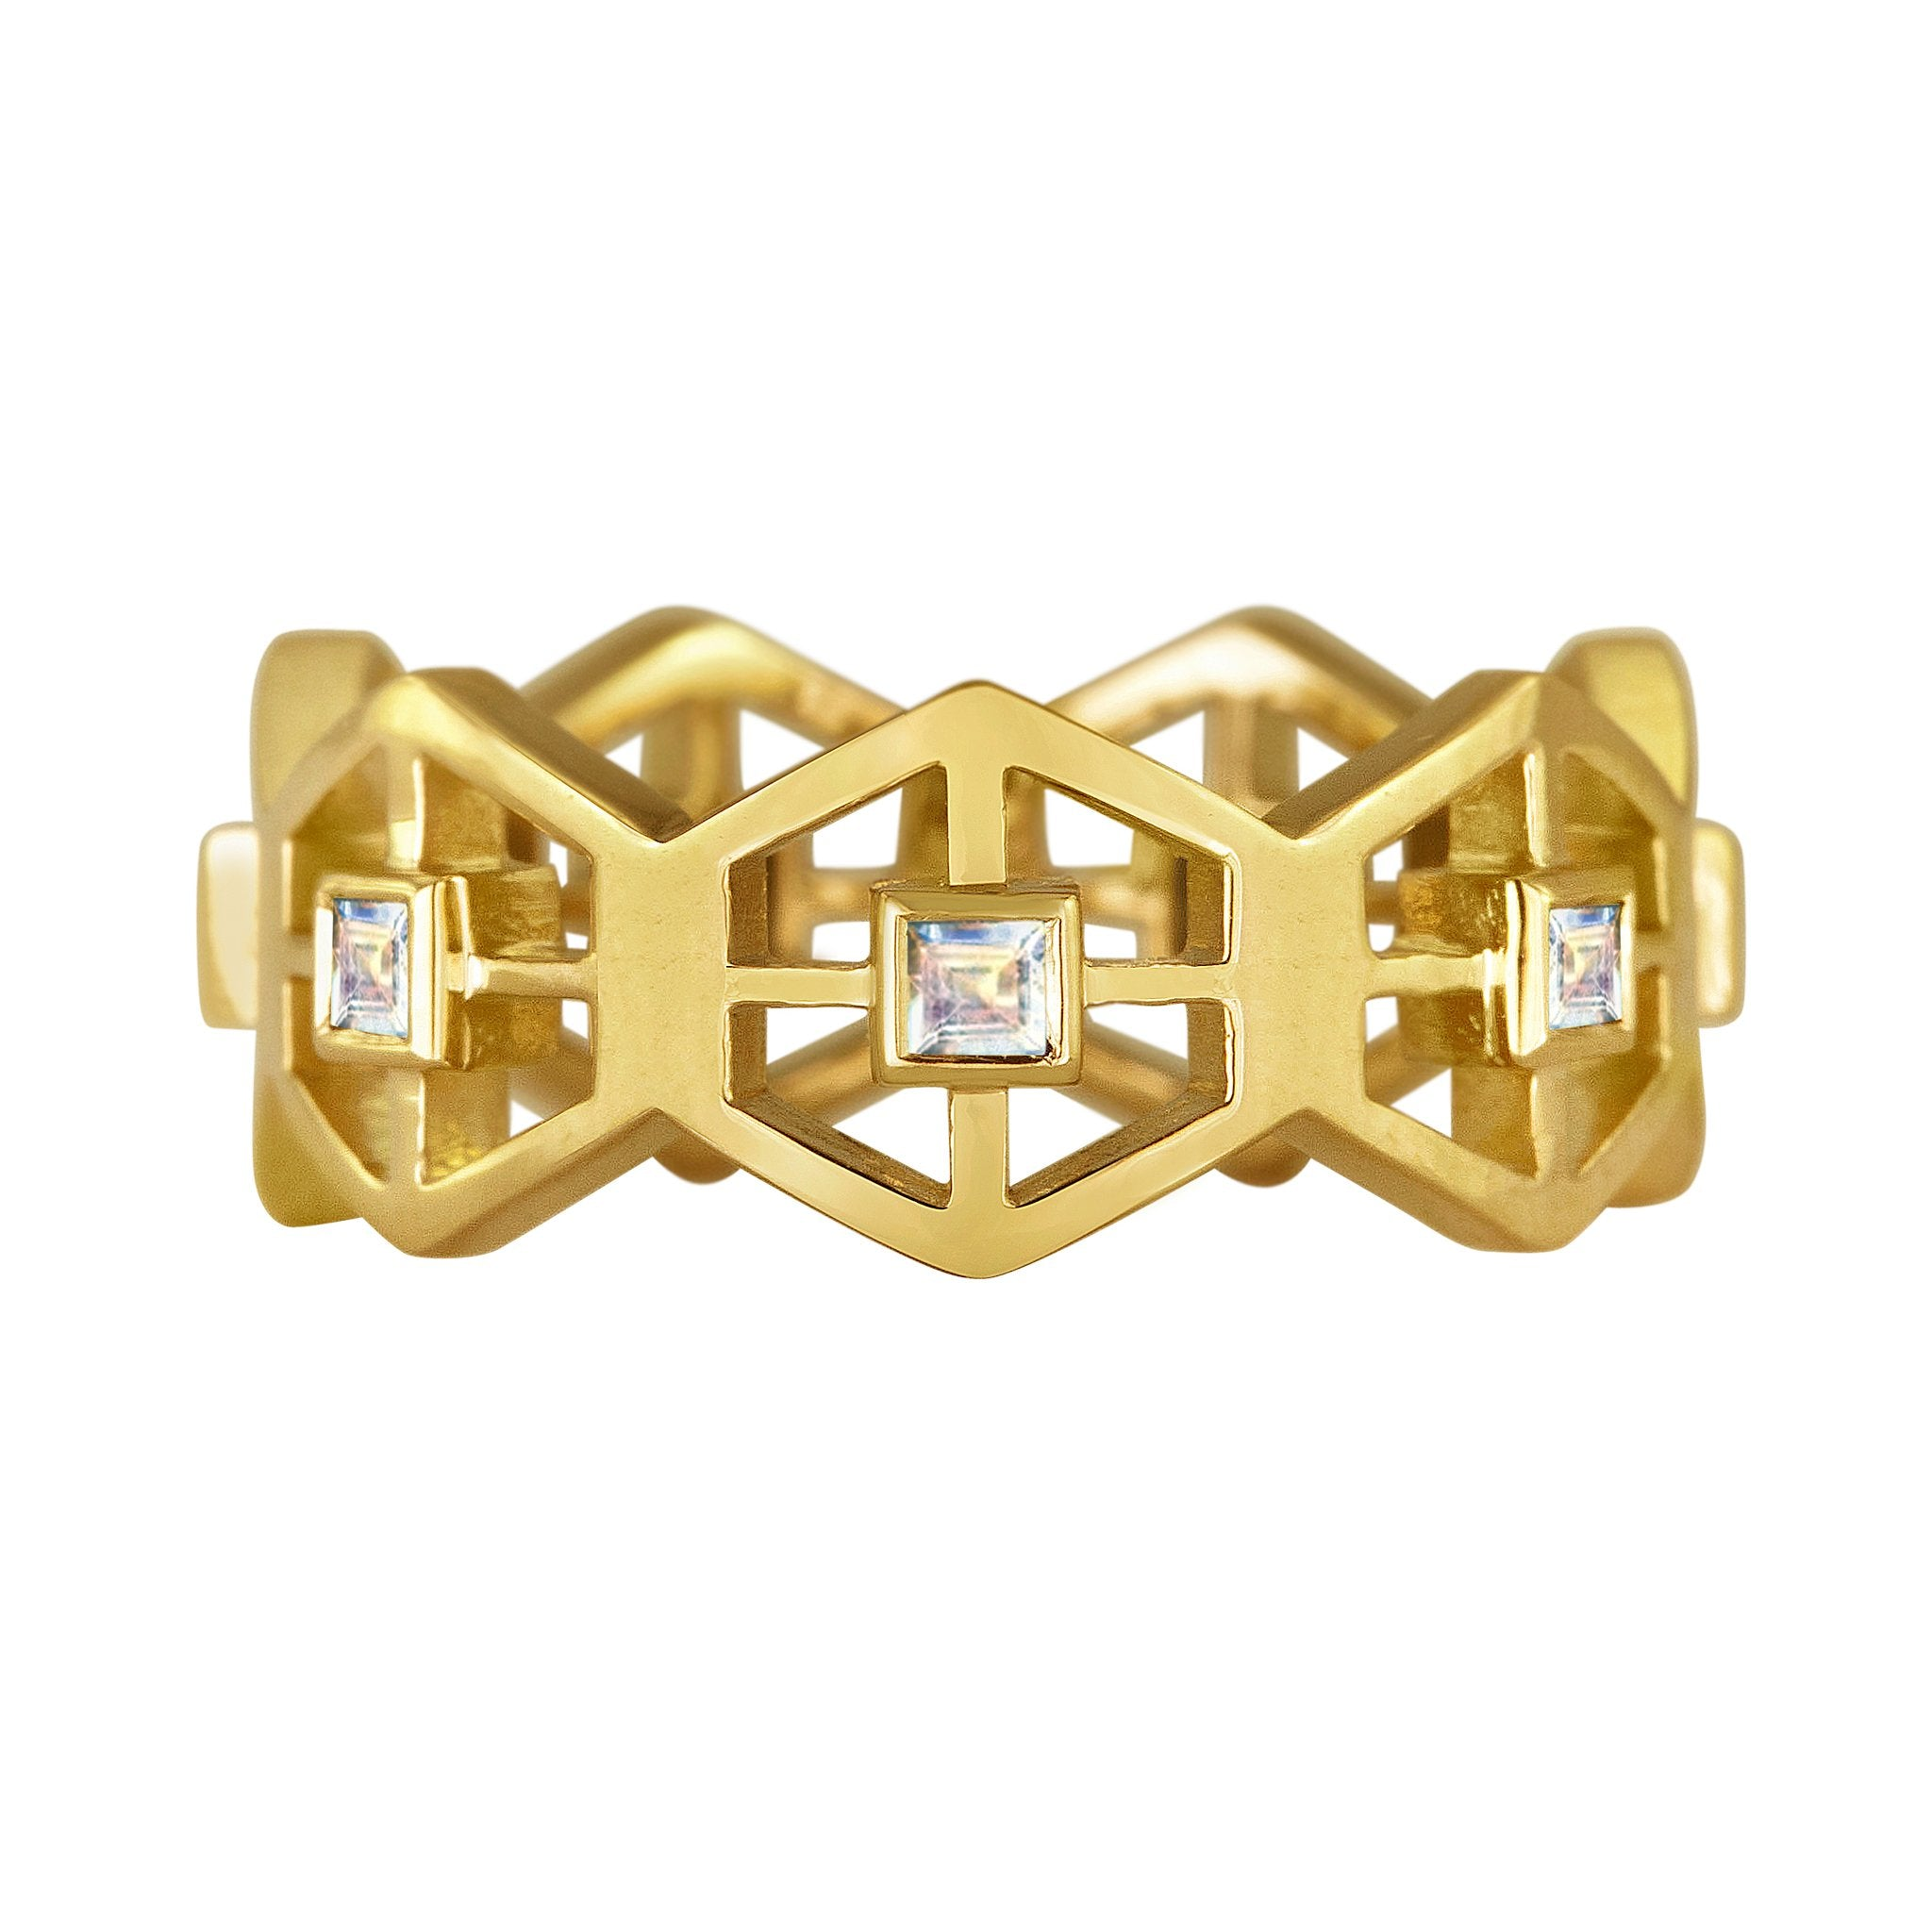 Grid Band Ring: 18k Gold, Square Rainbow Moonstones